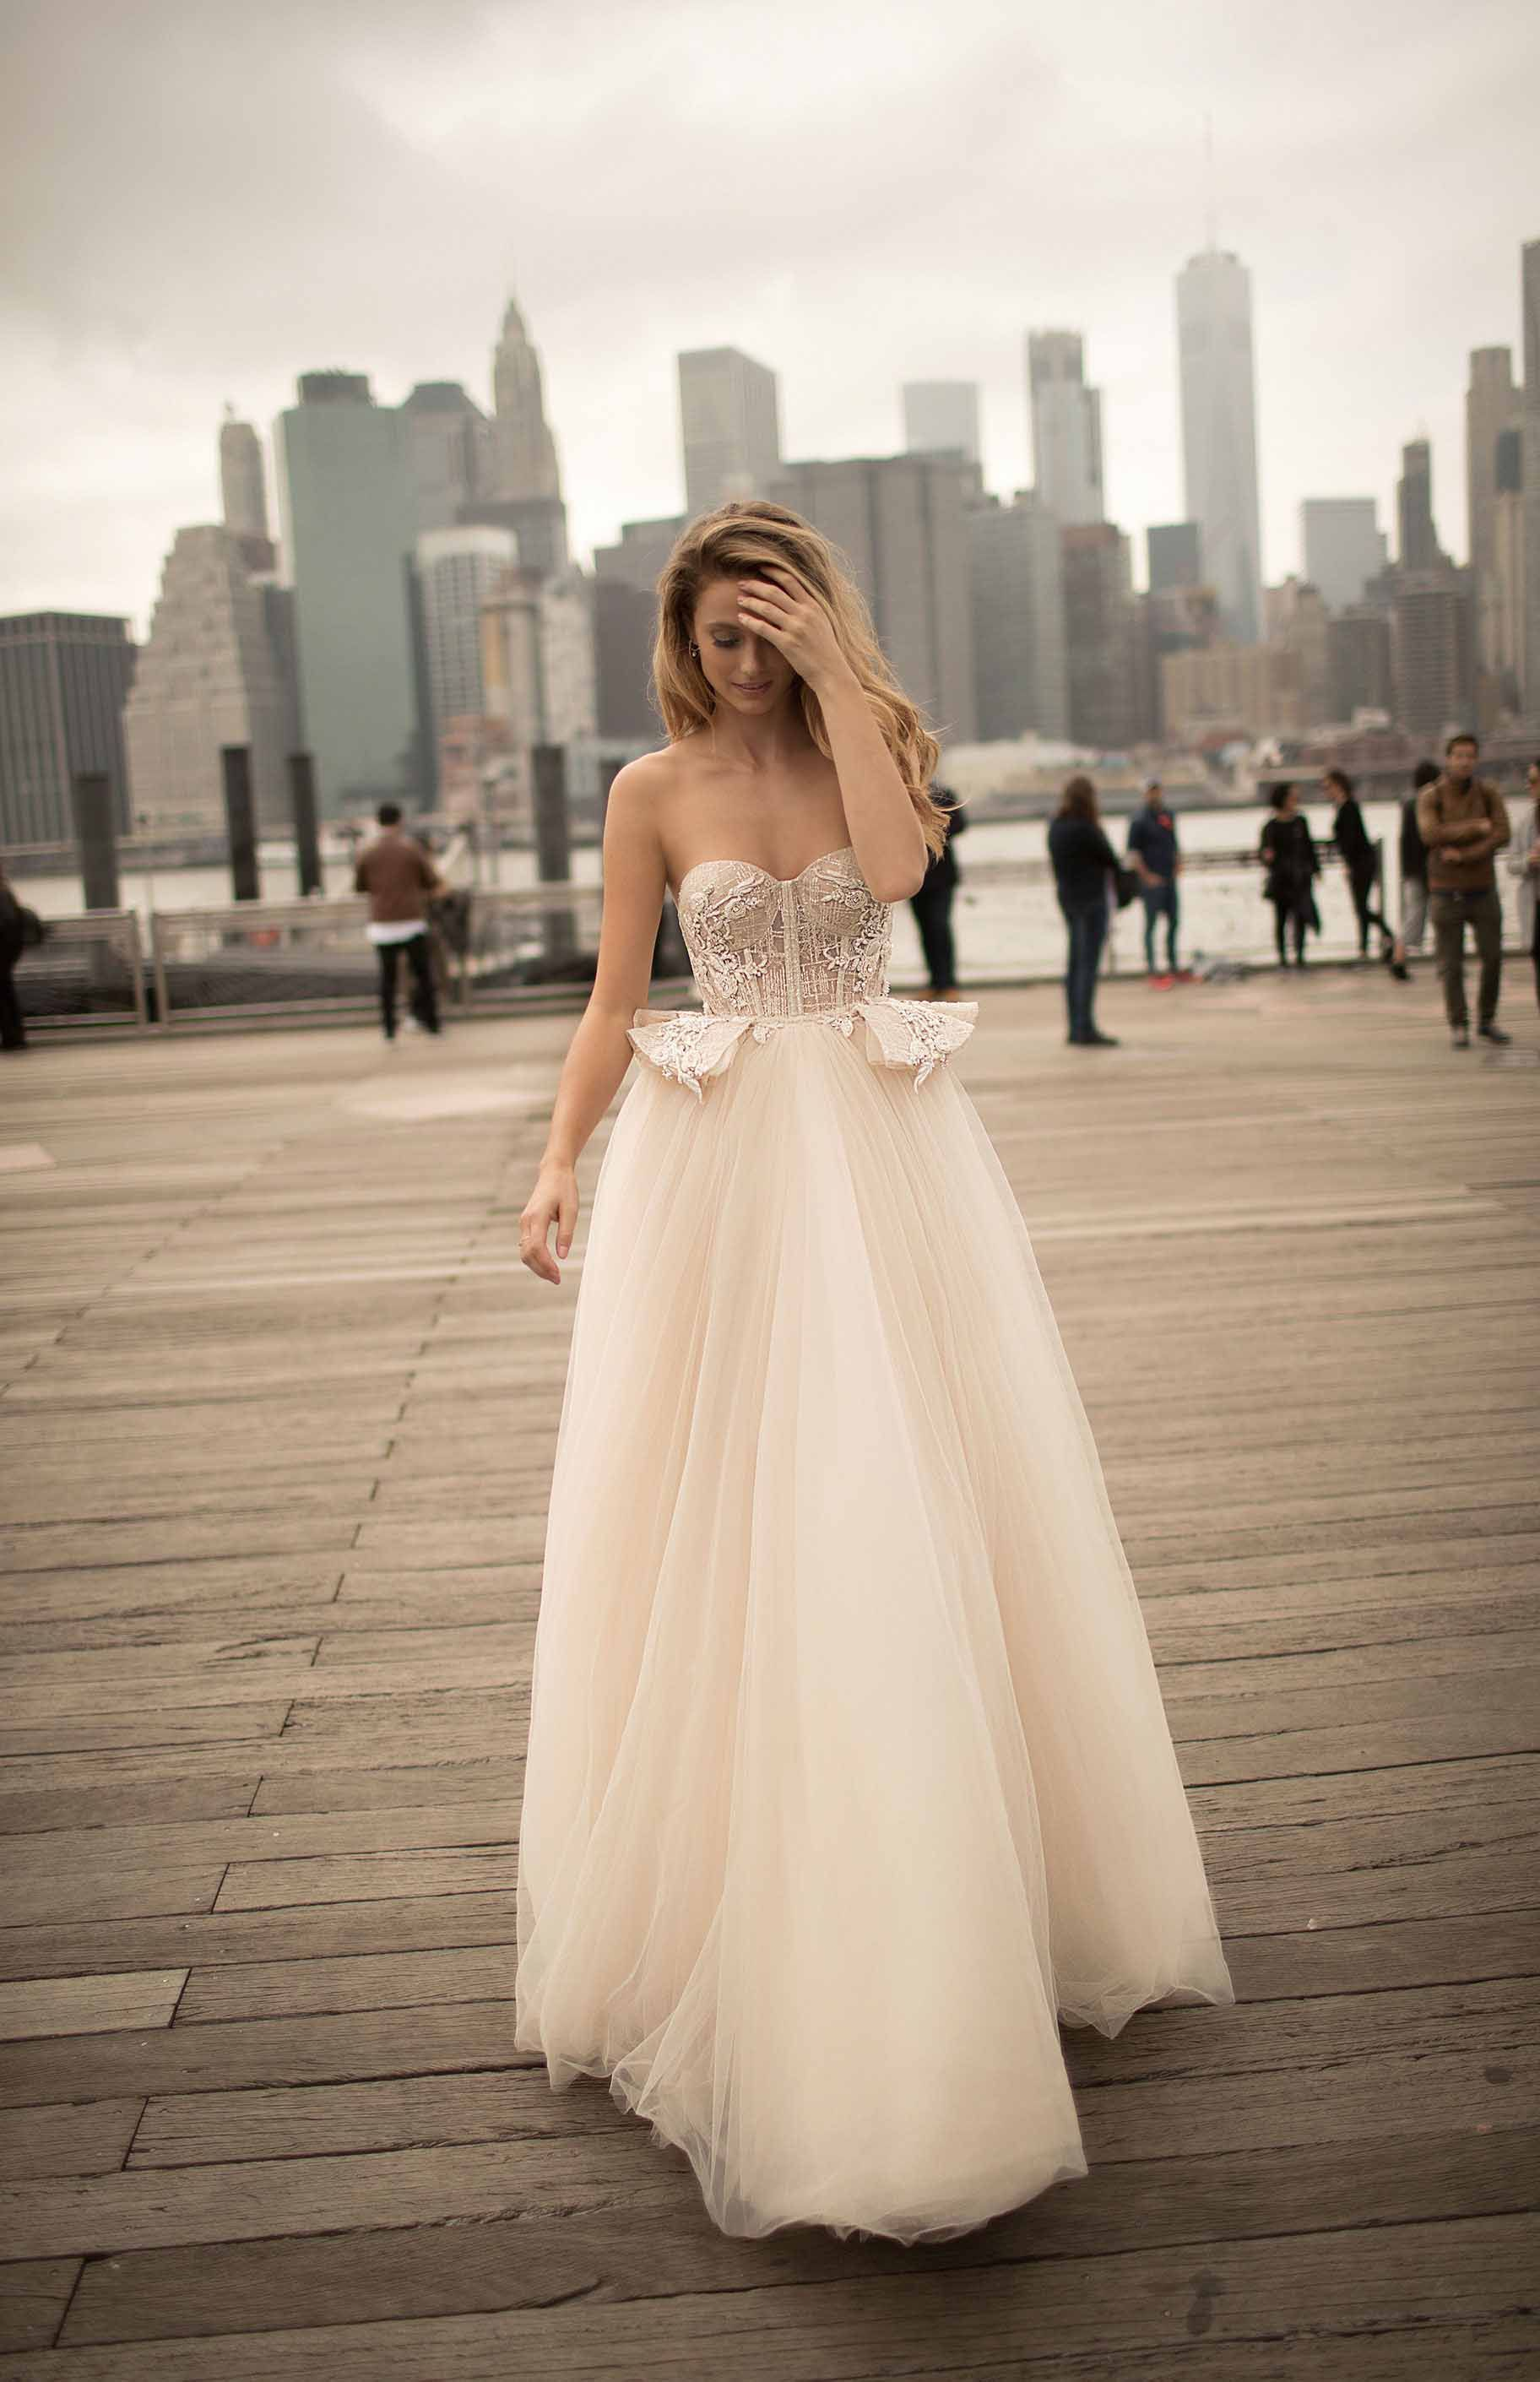 Ss berta wedding dress ideal pinterest wedding dress